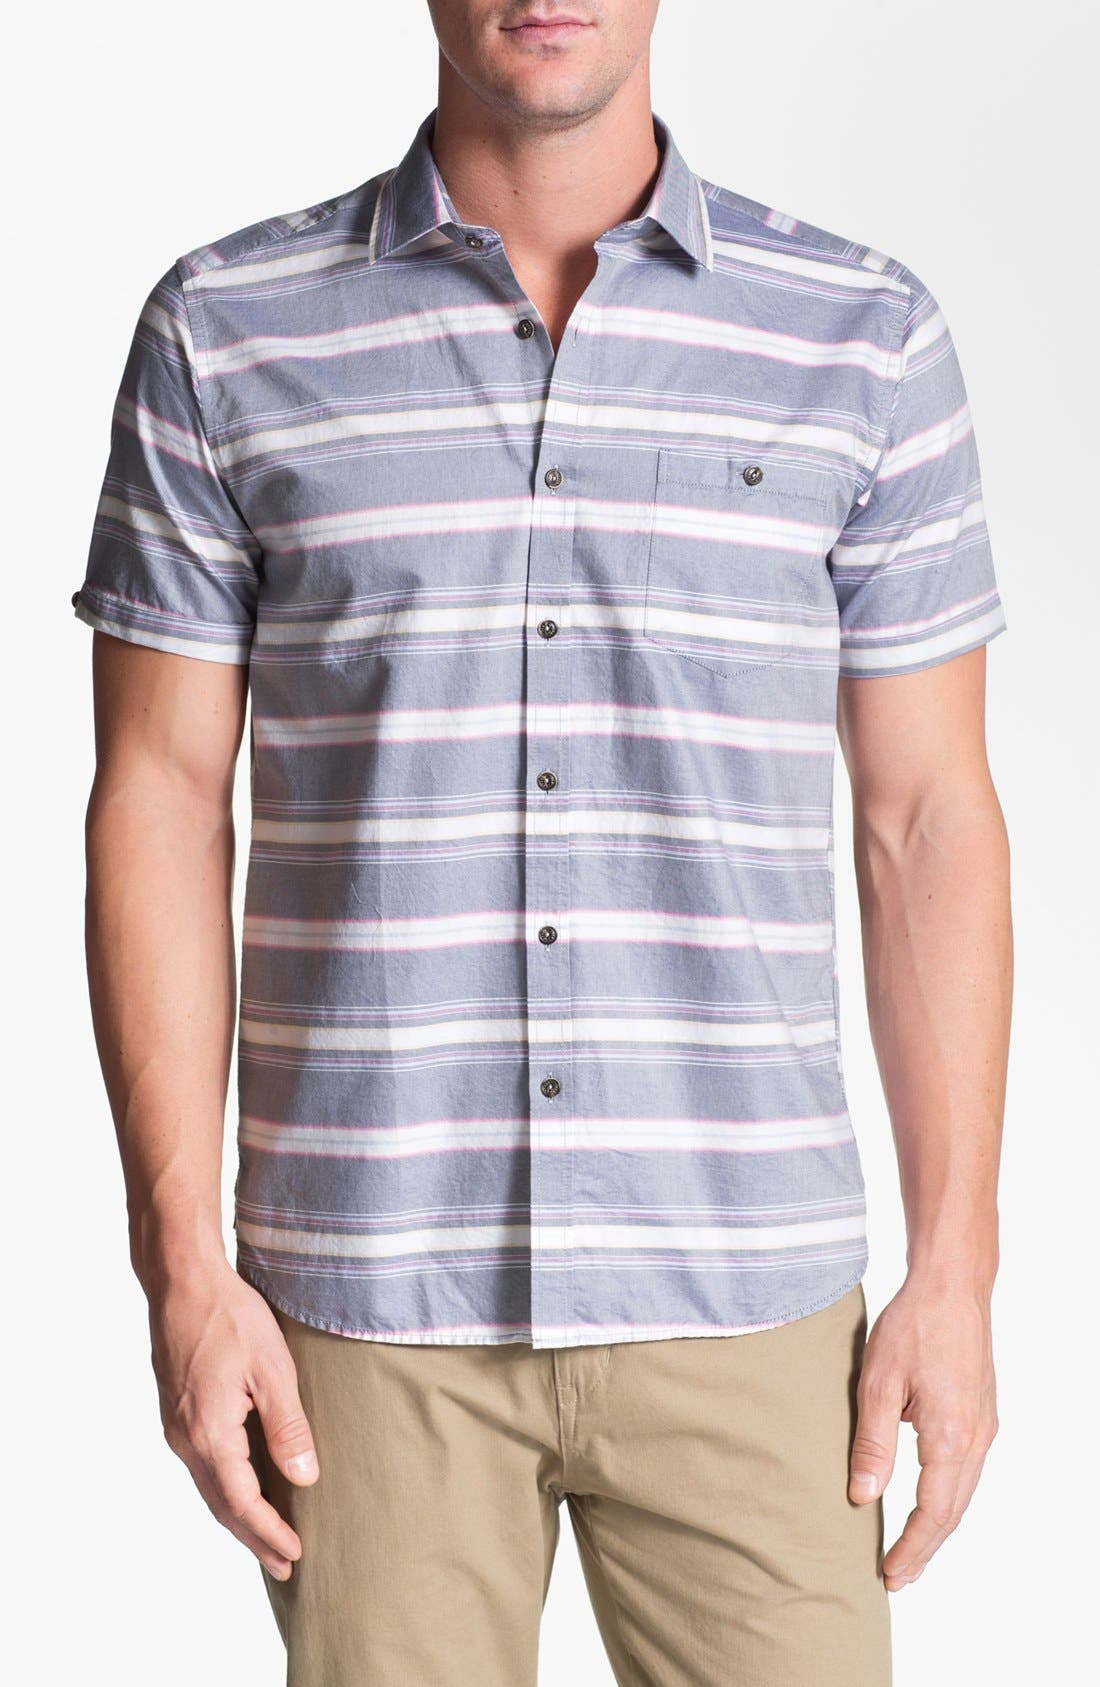 Alternate Image 1 Selected - Ted Baker London 'Sandrog' Trim Fit Short Sleeve Oxford Sport Shirt